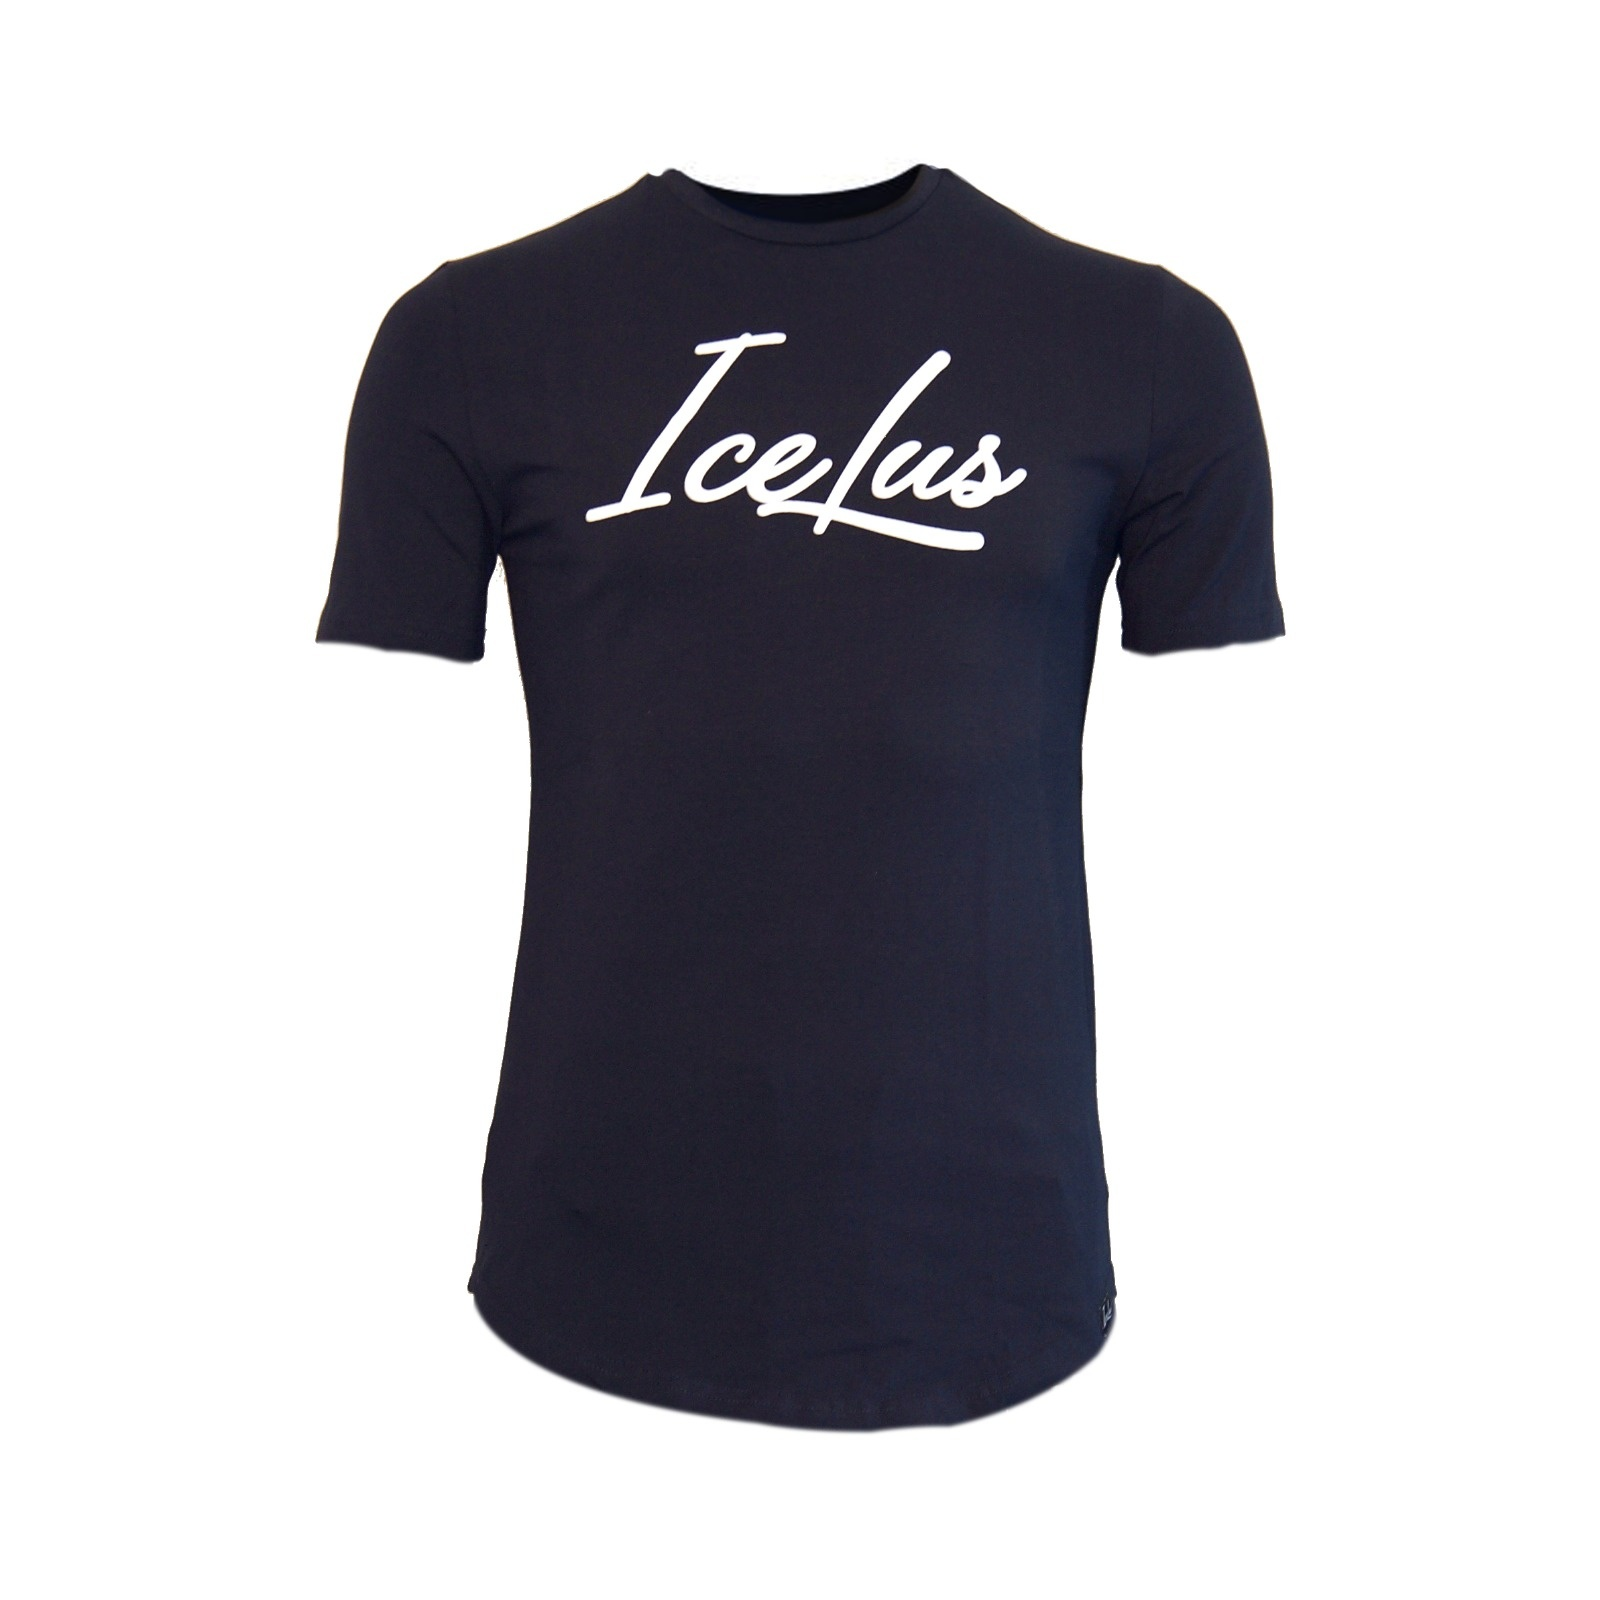 Icelus Clothing Icelus White on Blue